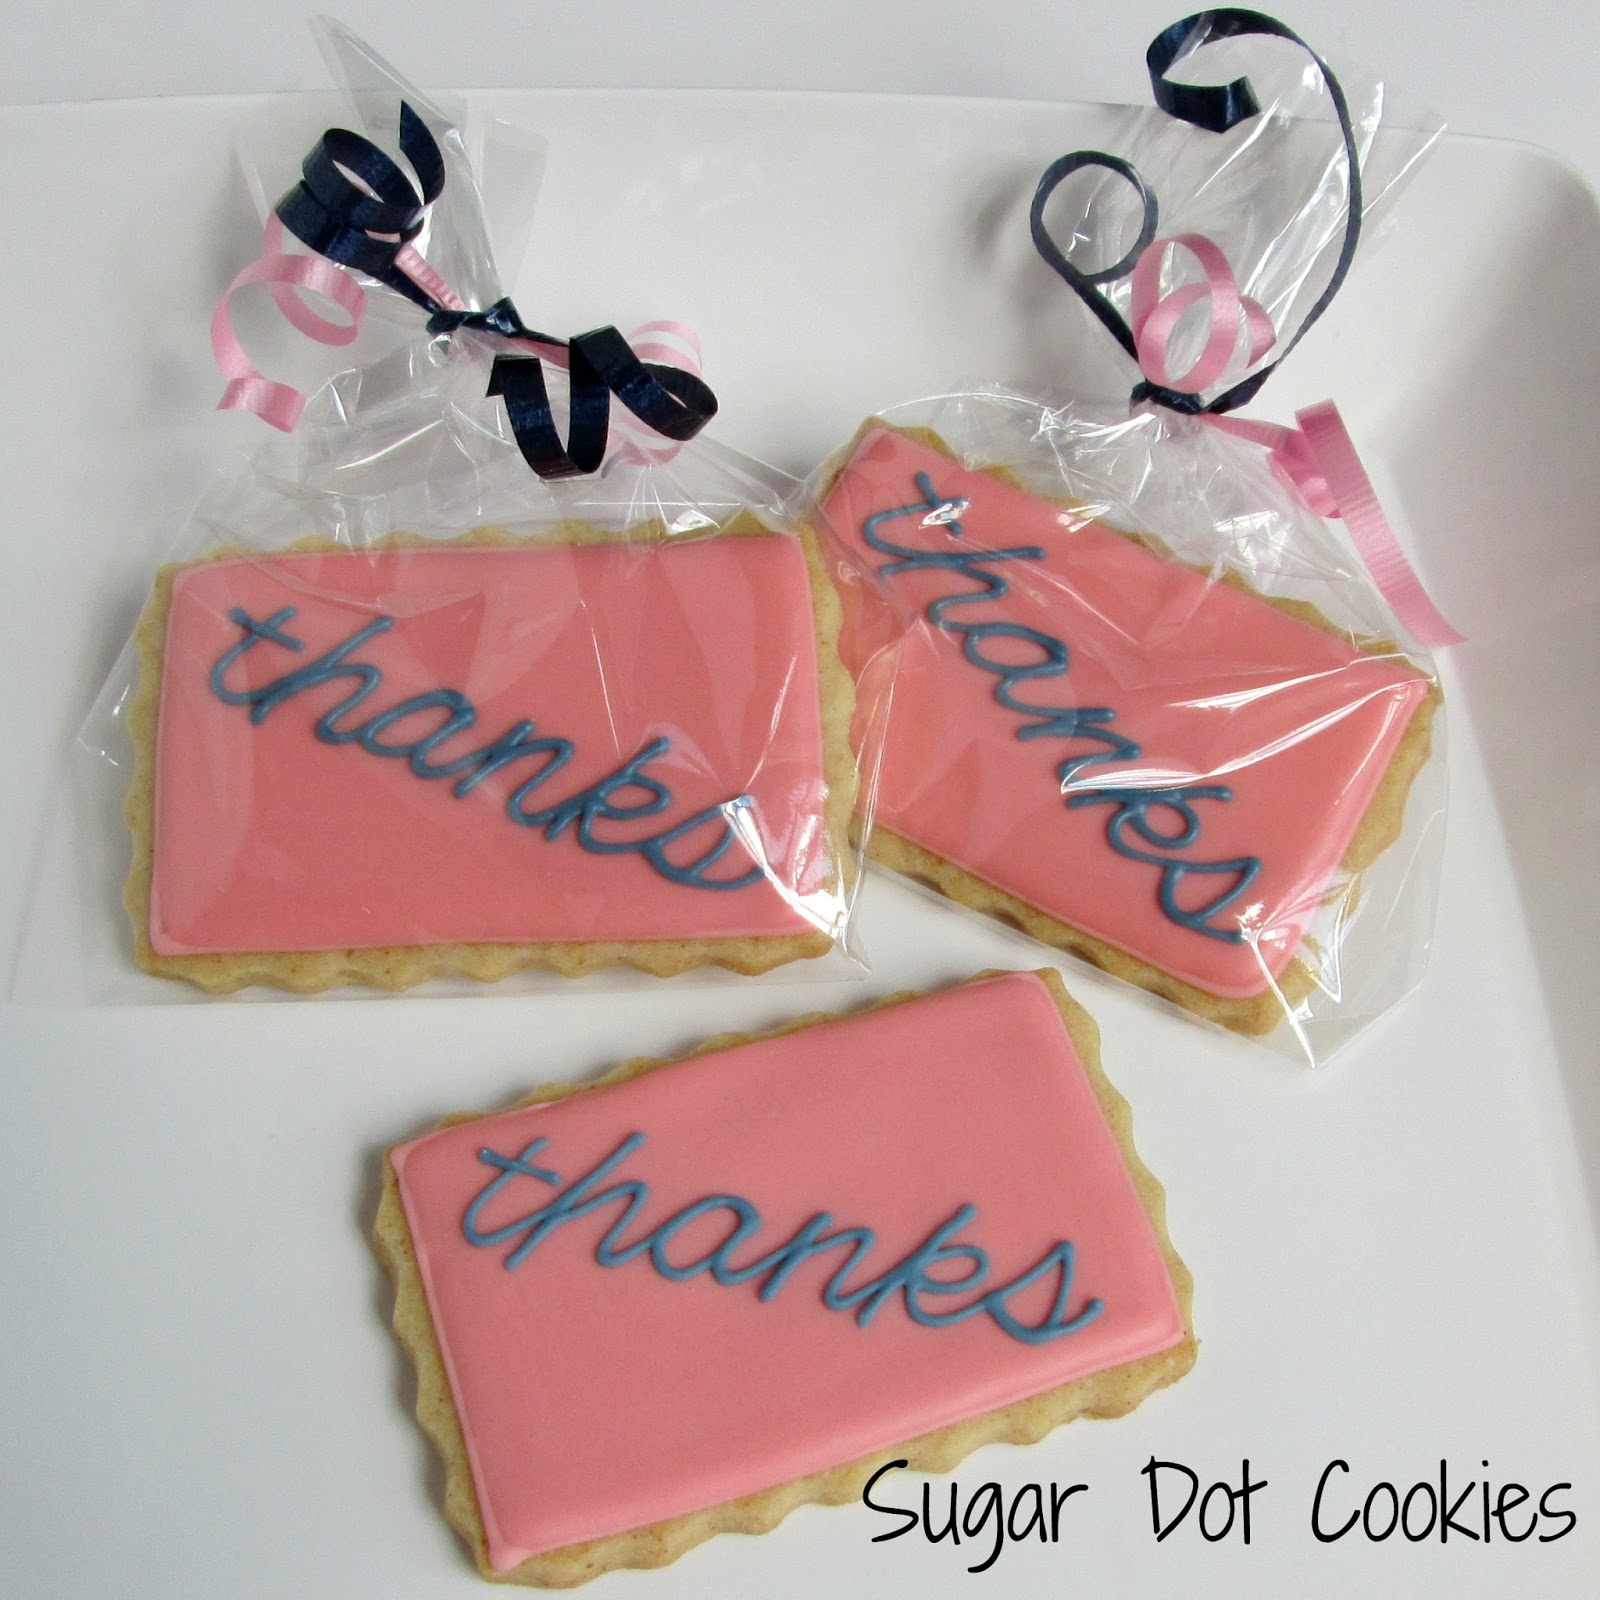 Sugar Dot Cookies: Thank You Sugar Cookies with Royal Icing